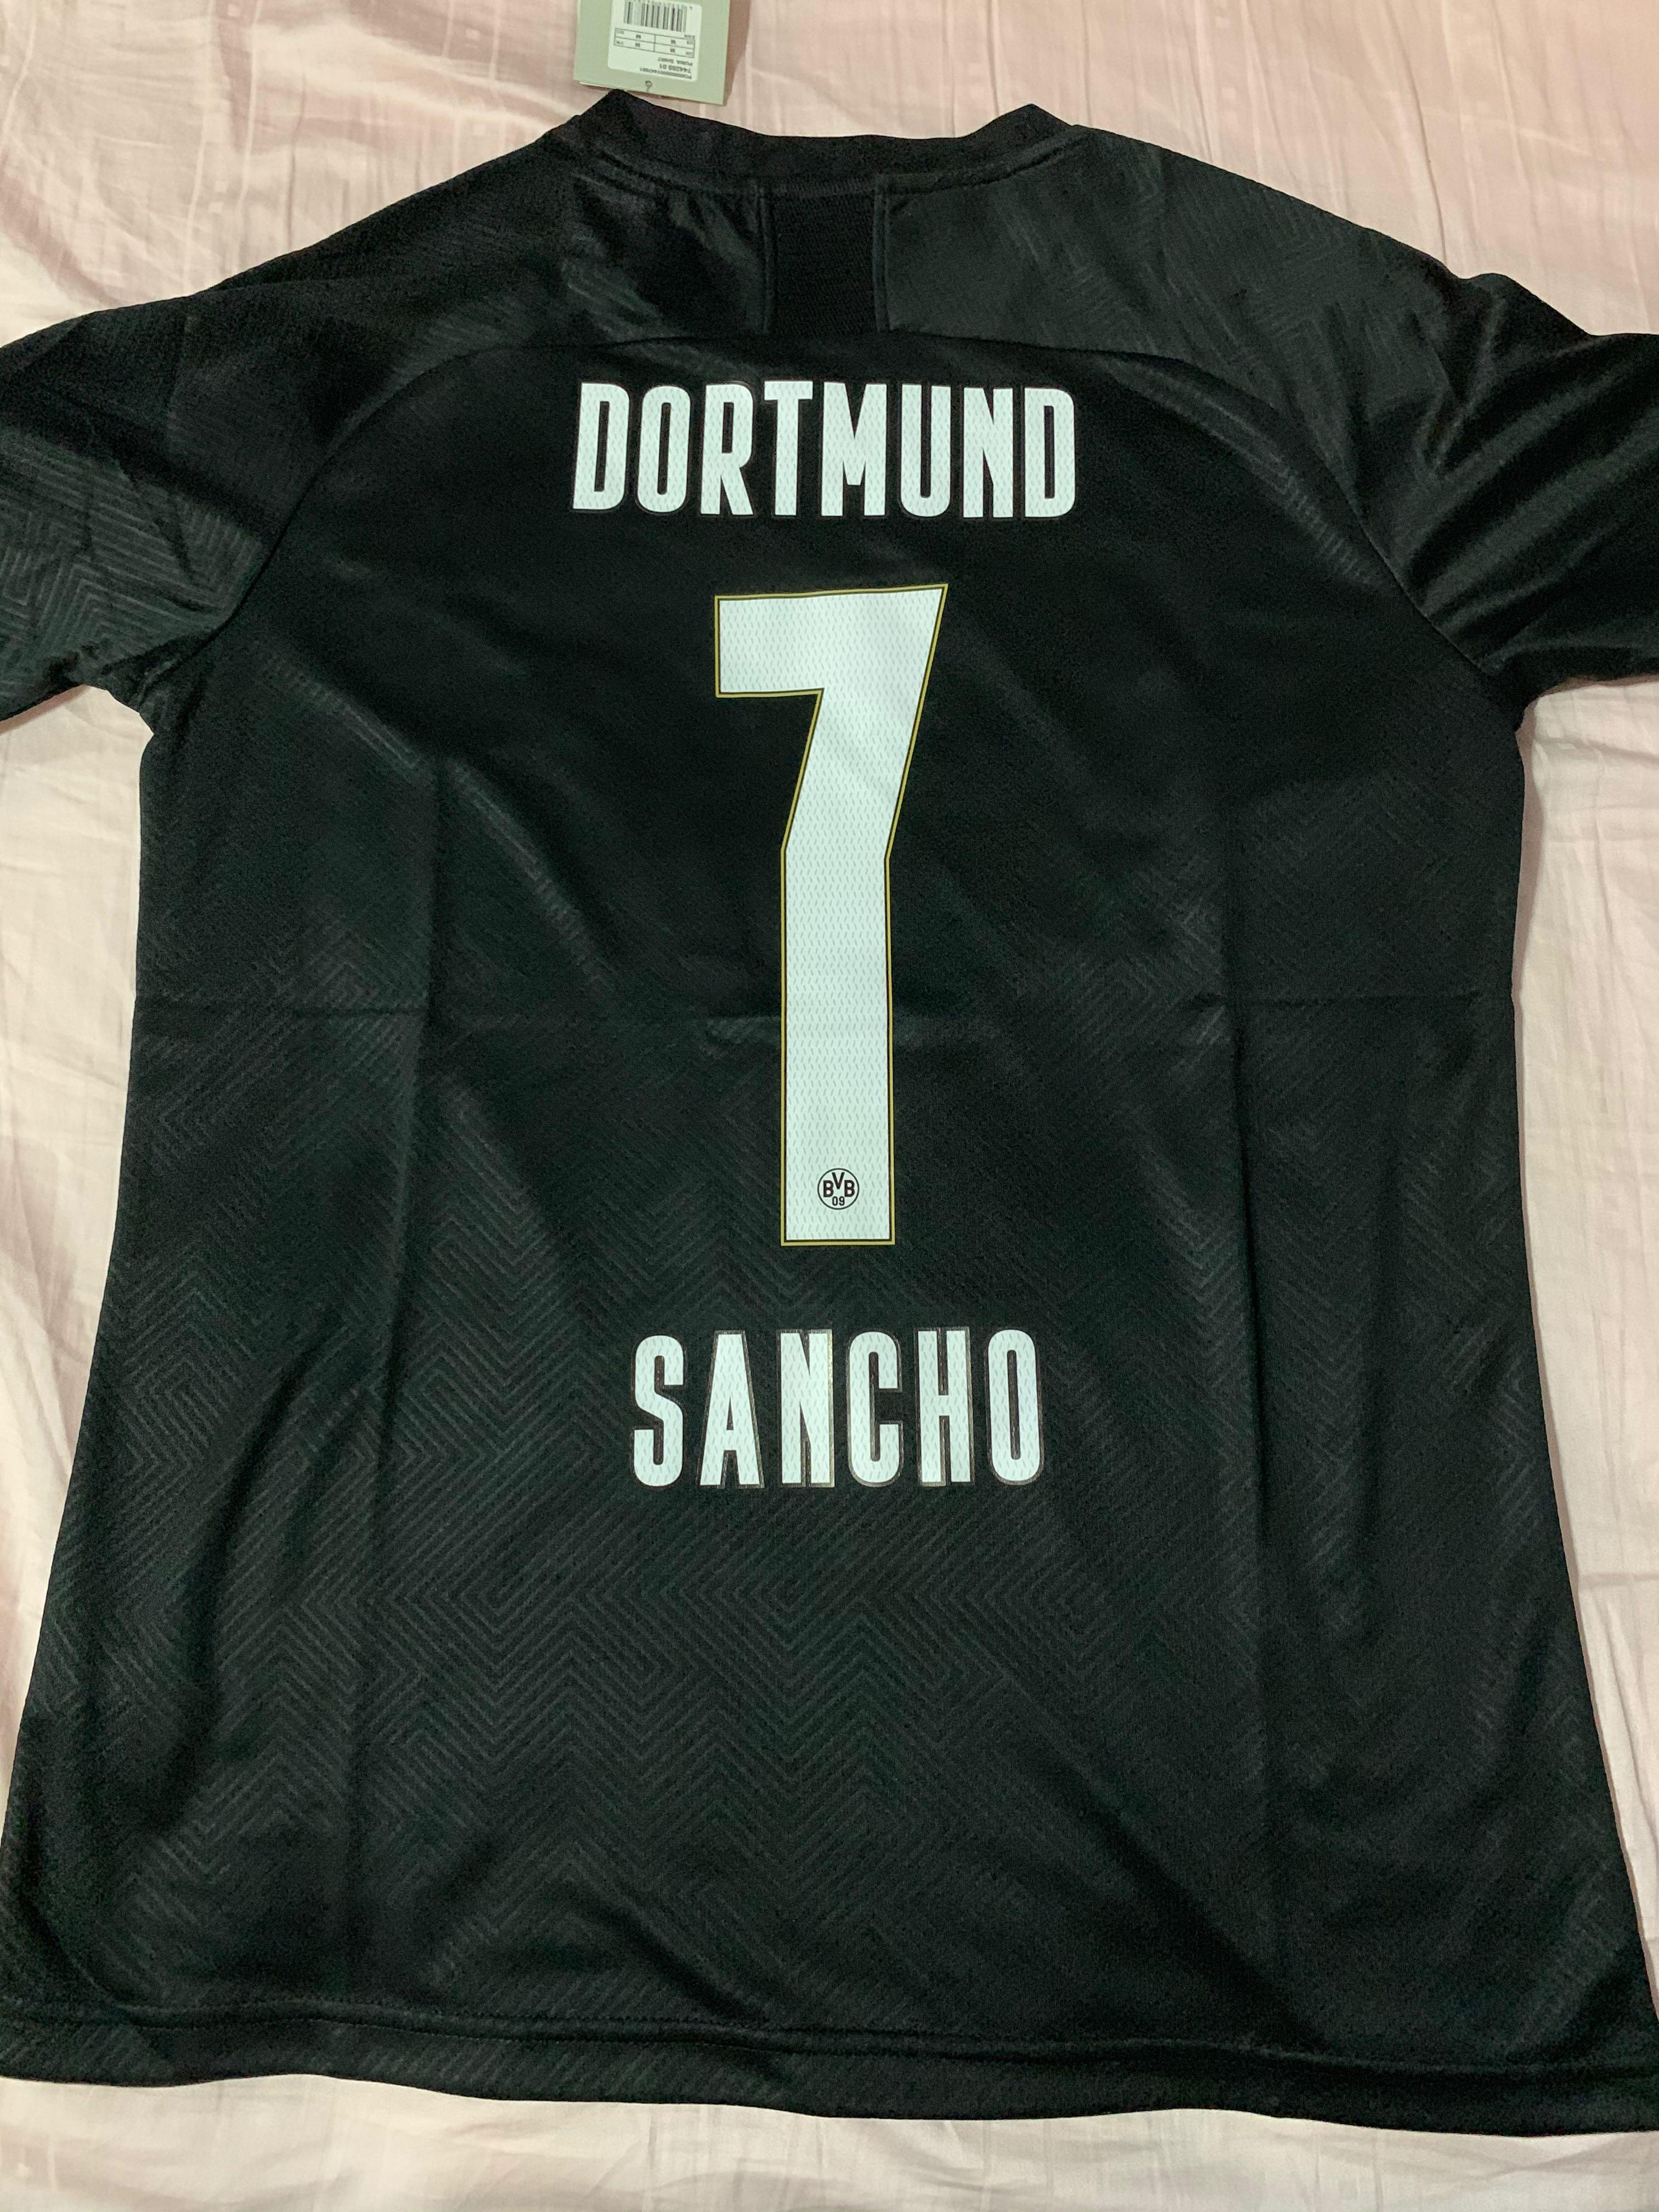 Dortmund All Black Special Kit Men S Fashion Clothes Tops On Carousell